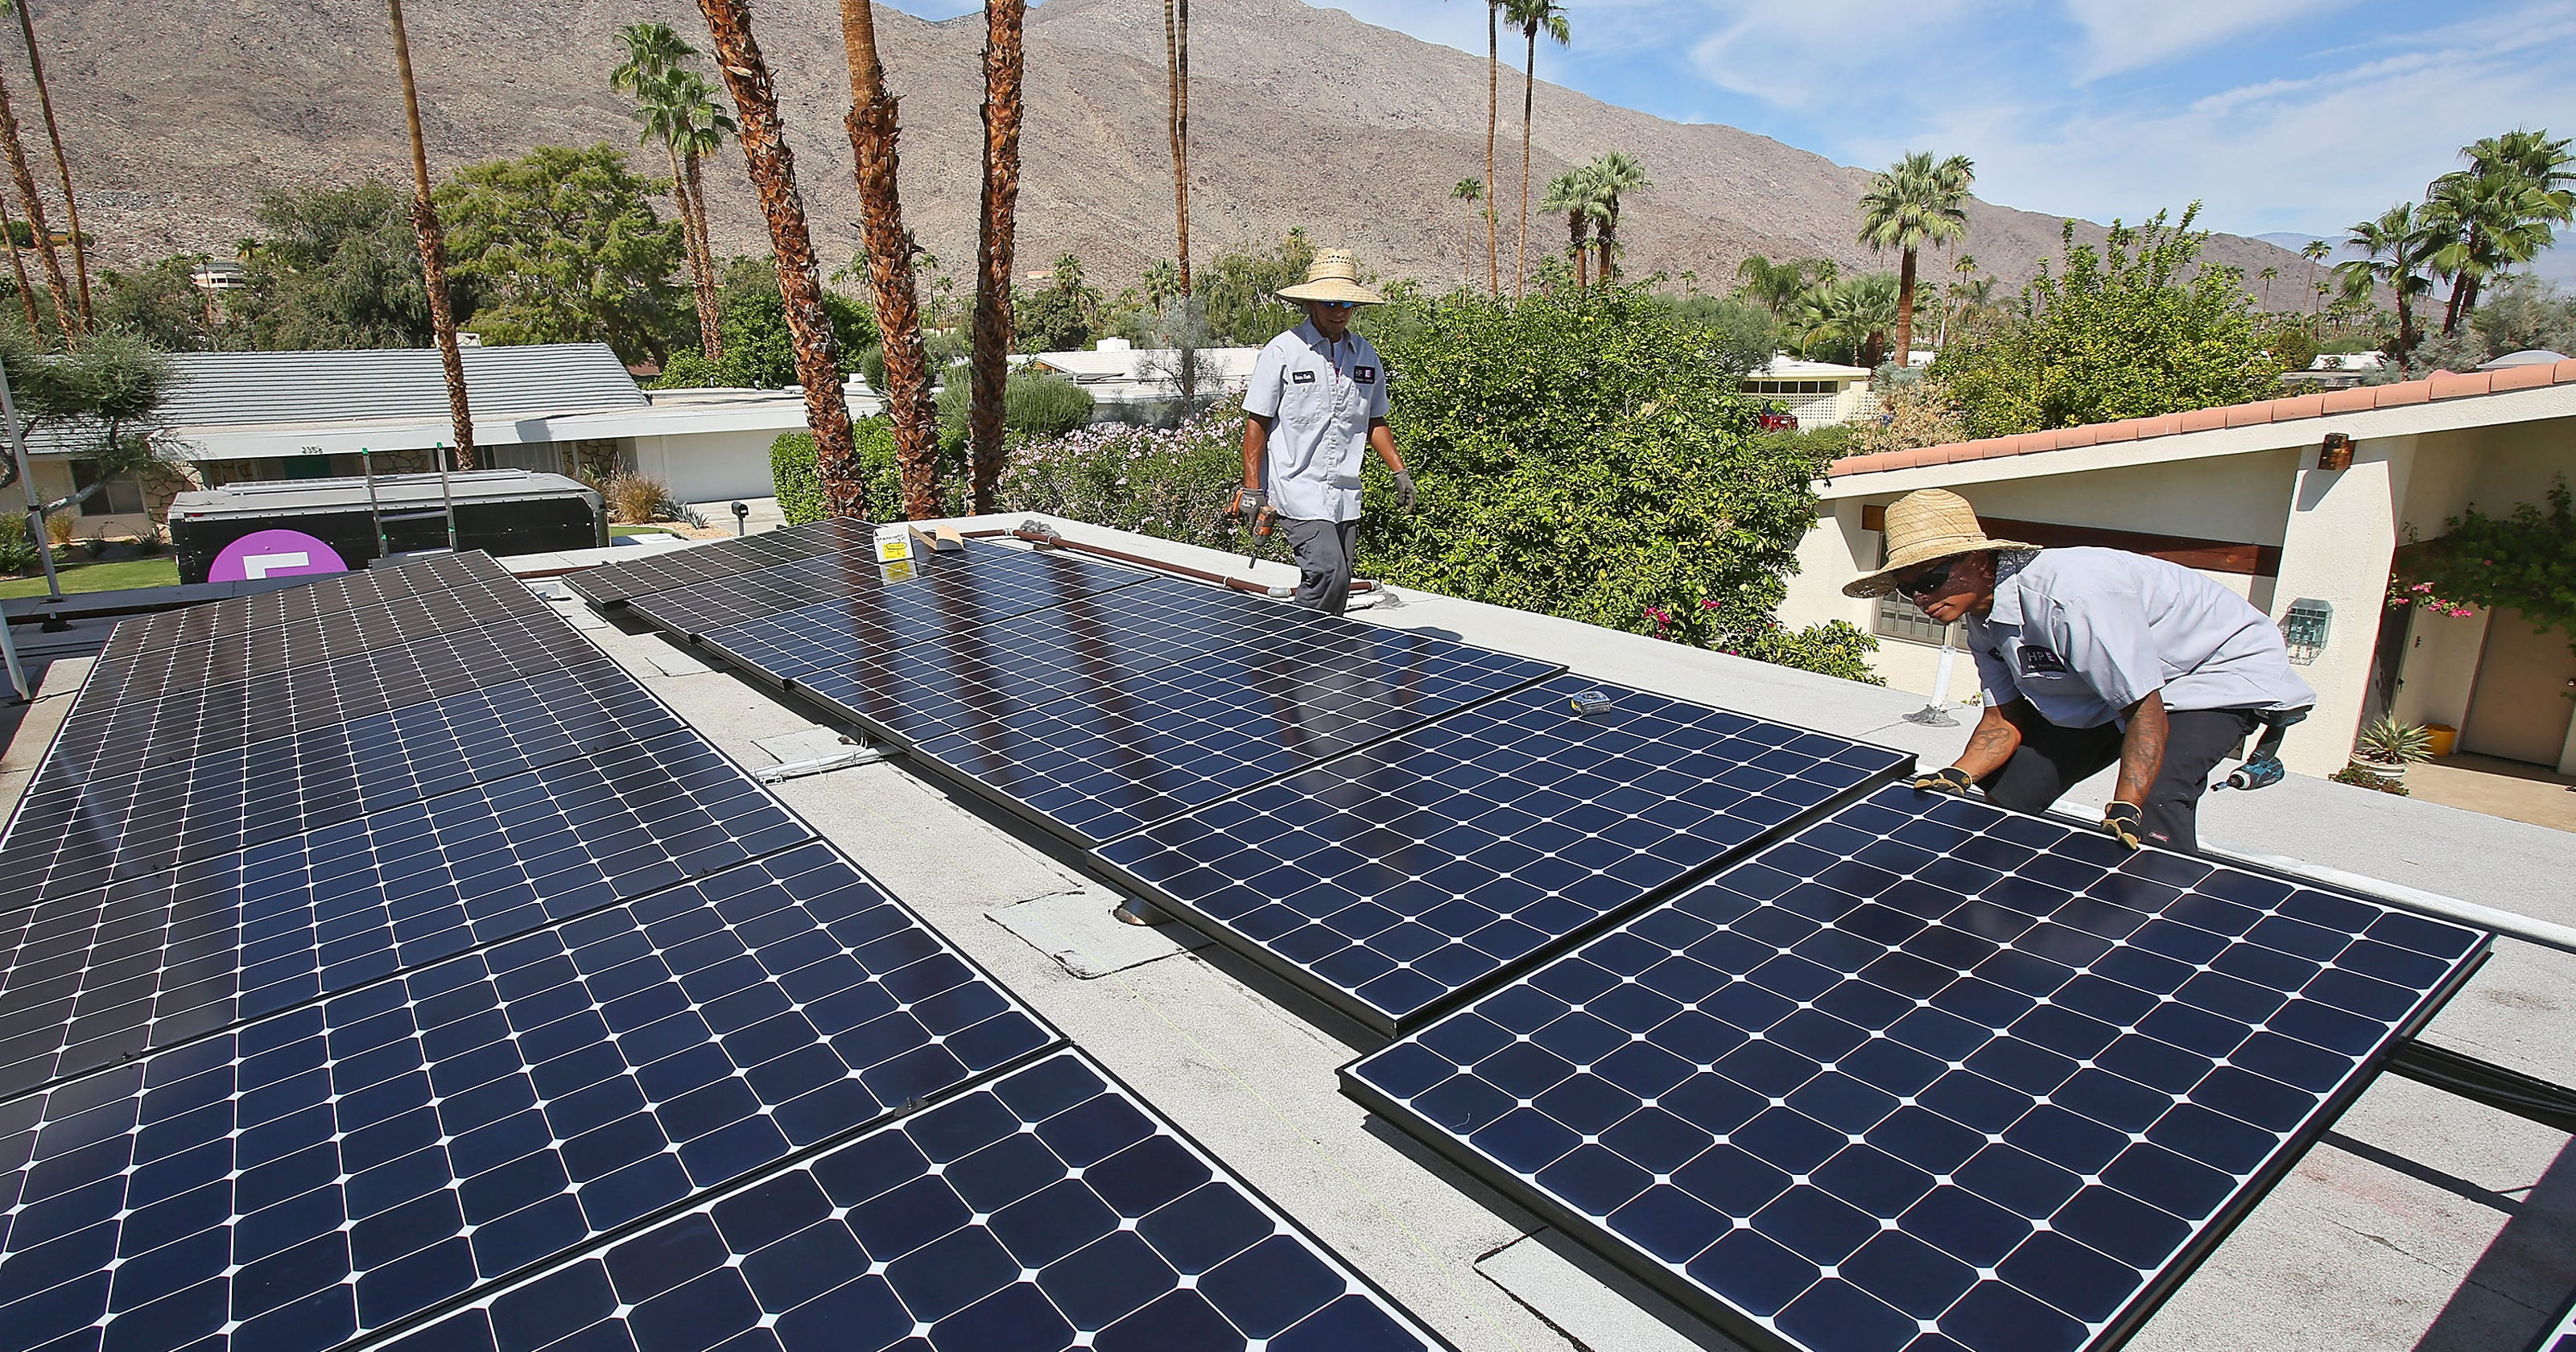 Riverside County Could Order Iid To Bring Back Rooftop Solar Program Ford Panel Roof